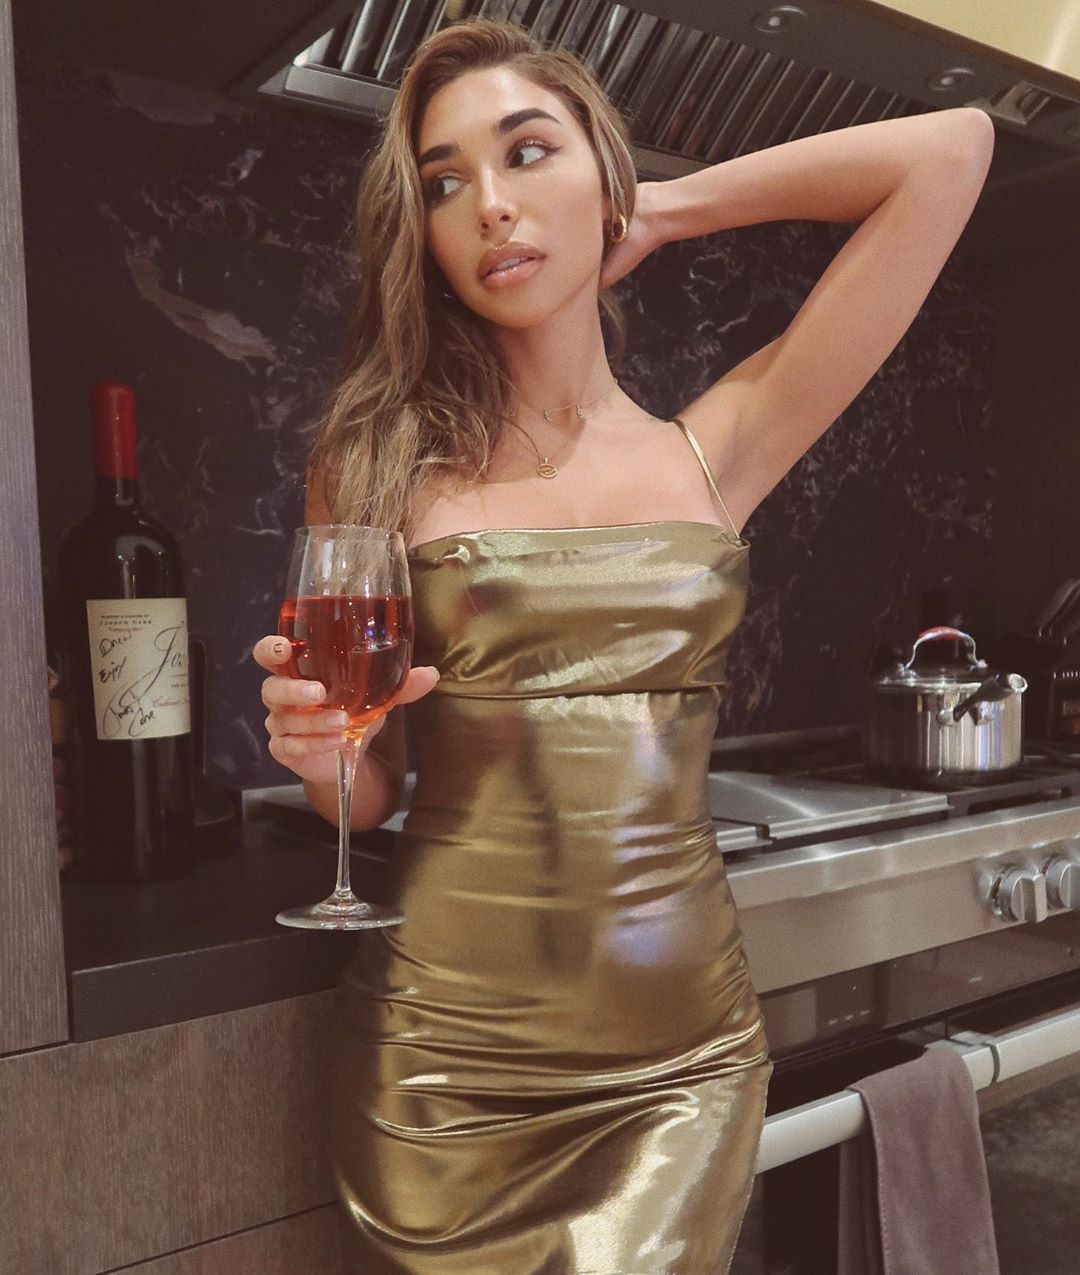 Chantel Jeffries wearing a Plunging shiny metallic gold NBD dress with a satin material, a cowl neck and spaghetti straps